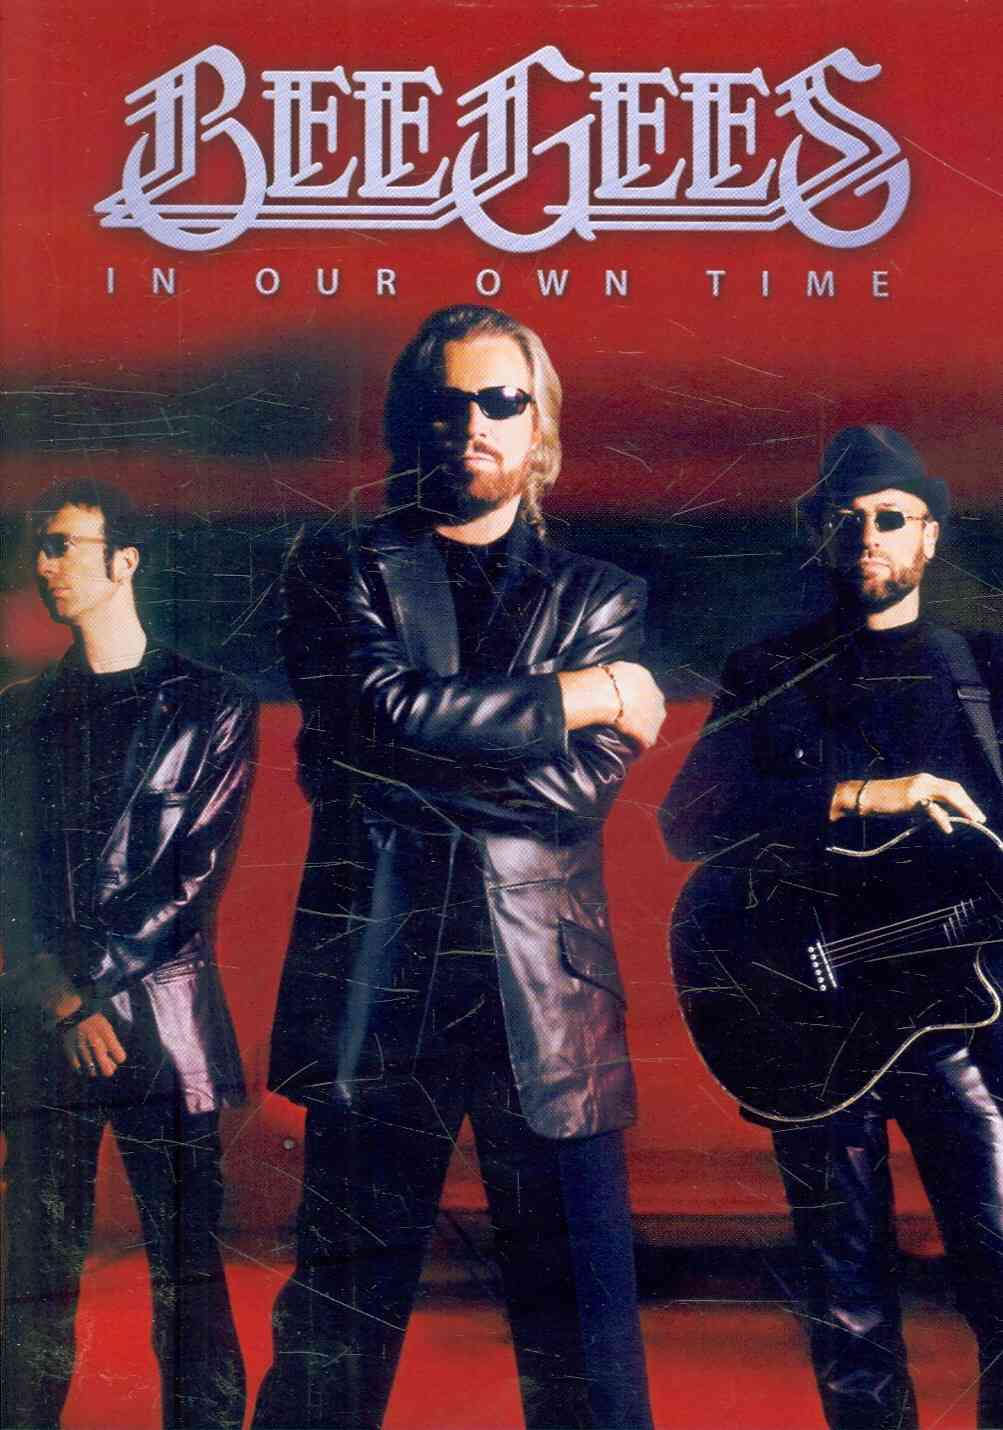 IN OUR OWN TIME BY BEE GEES (DVD)